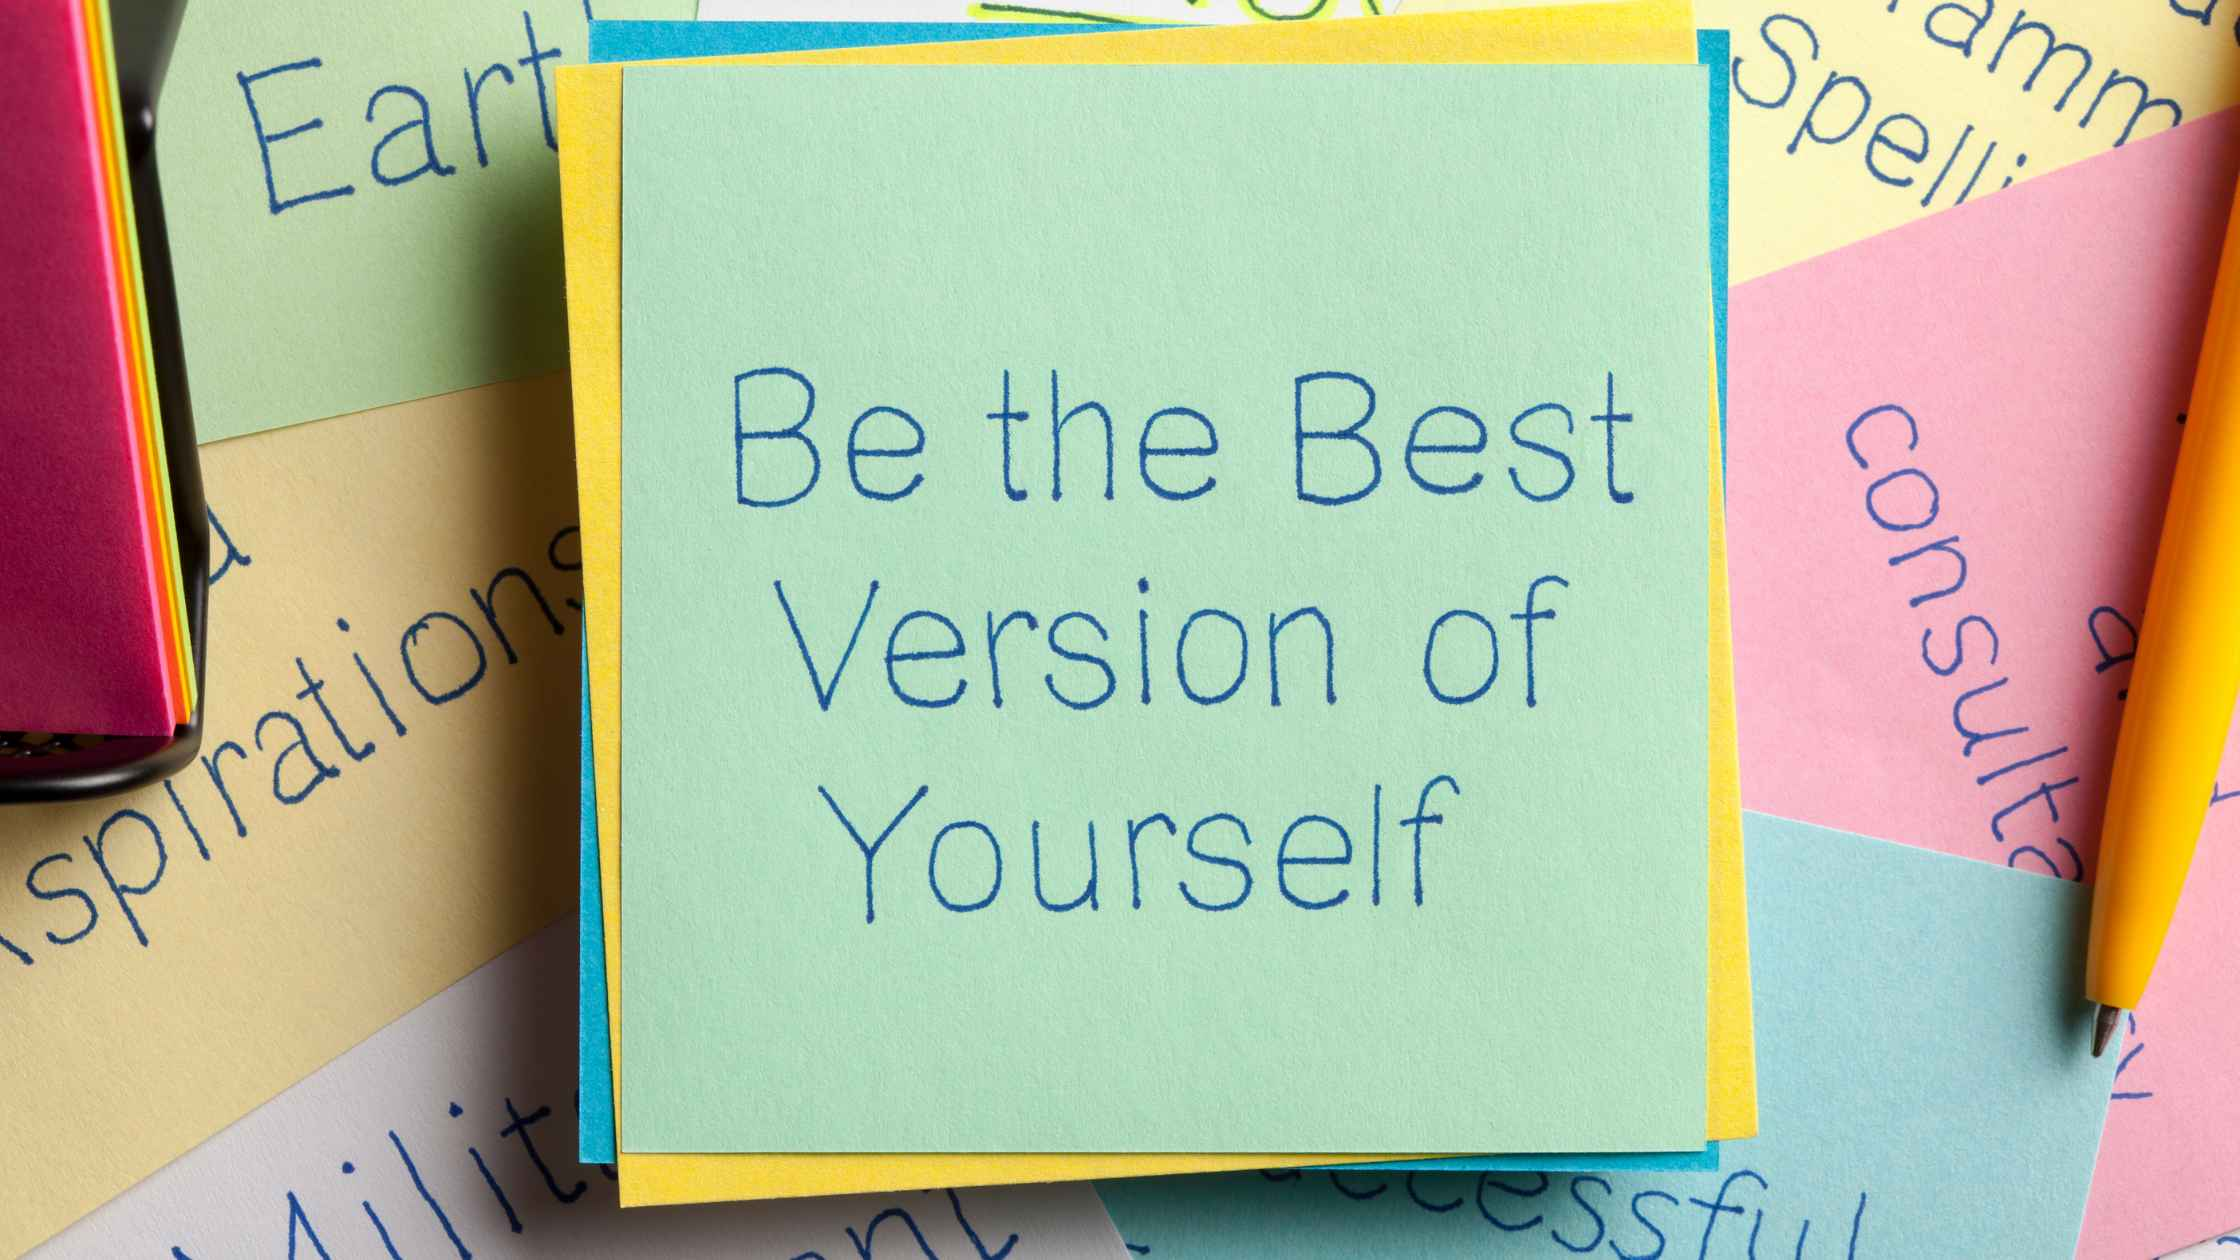 5 Different Ways You Can Change Yourself For The Better